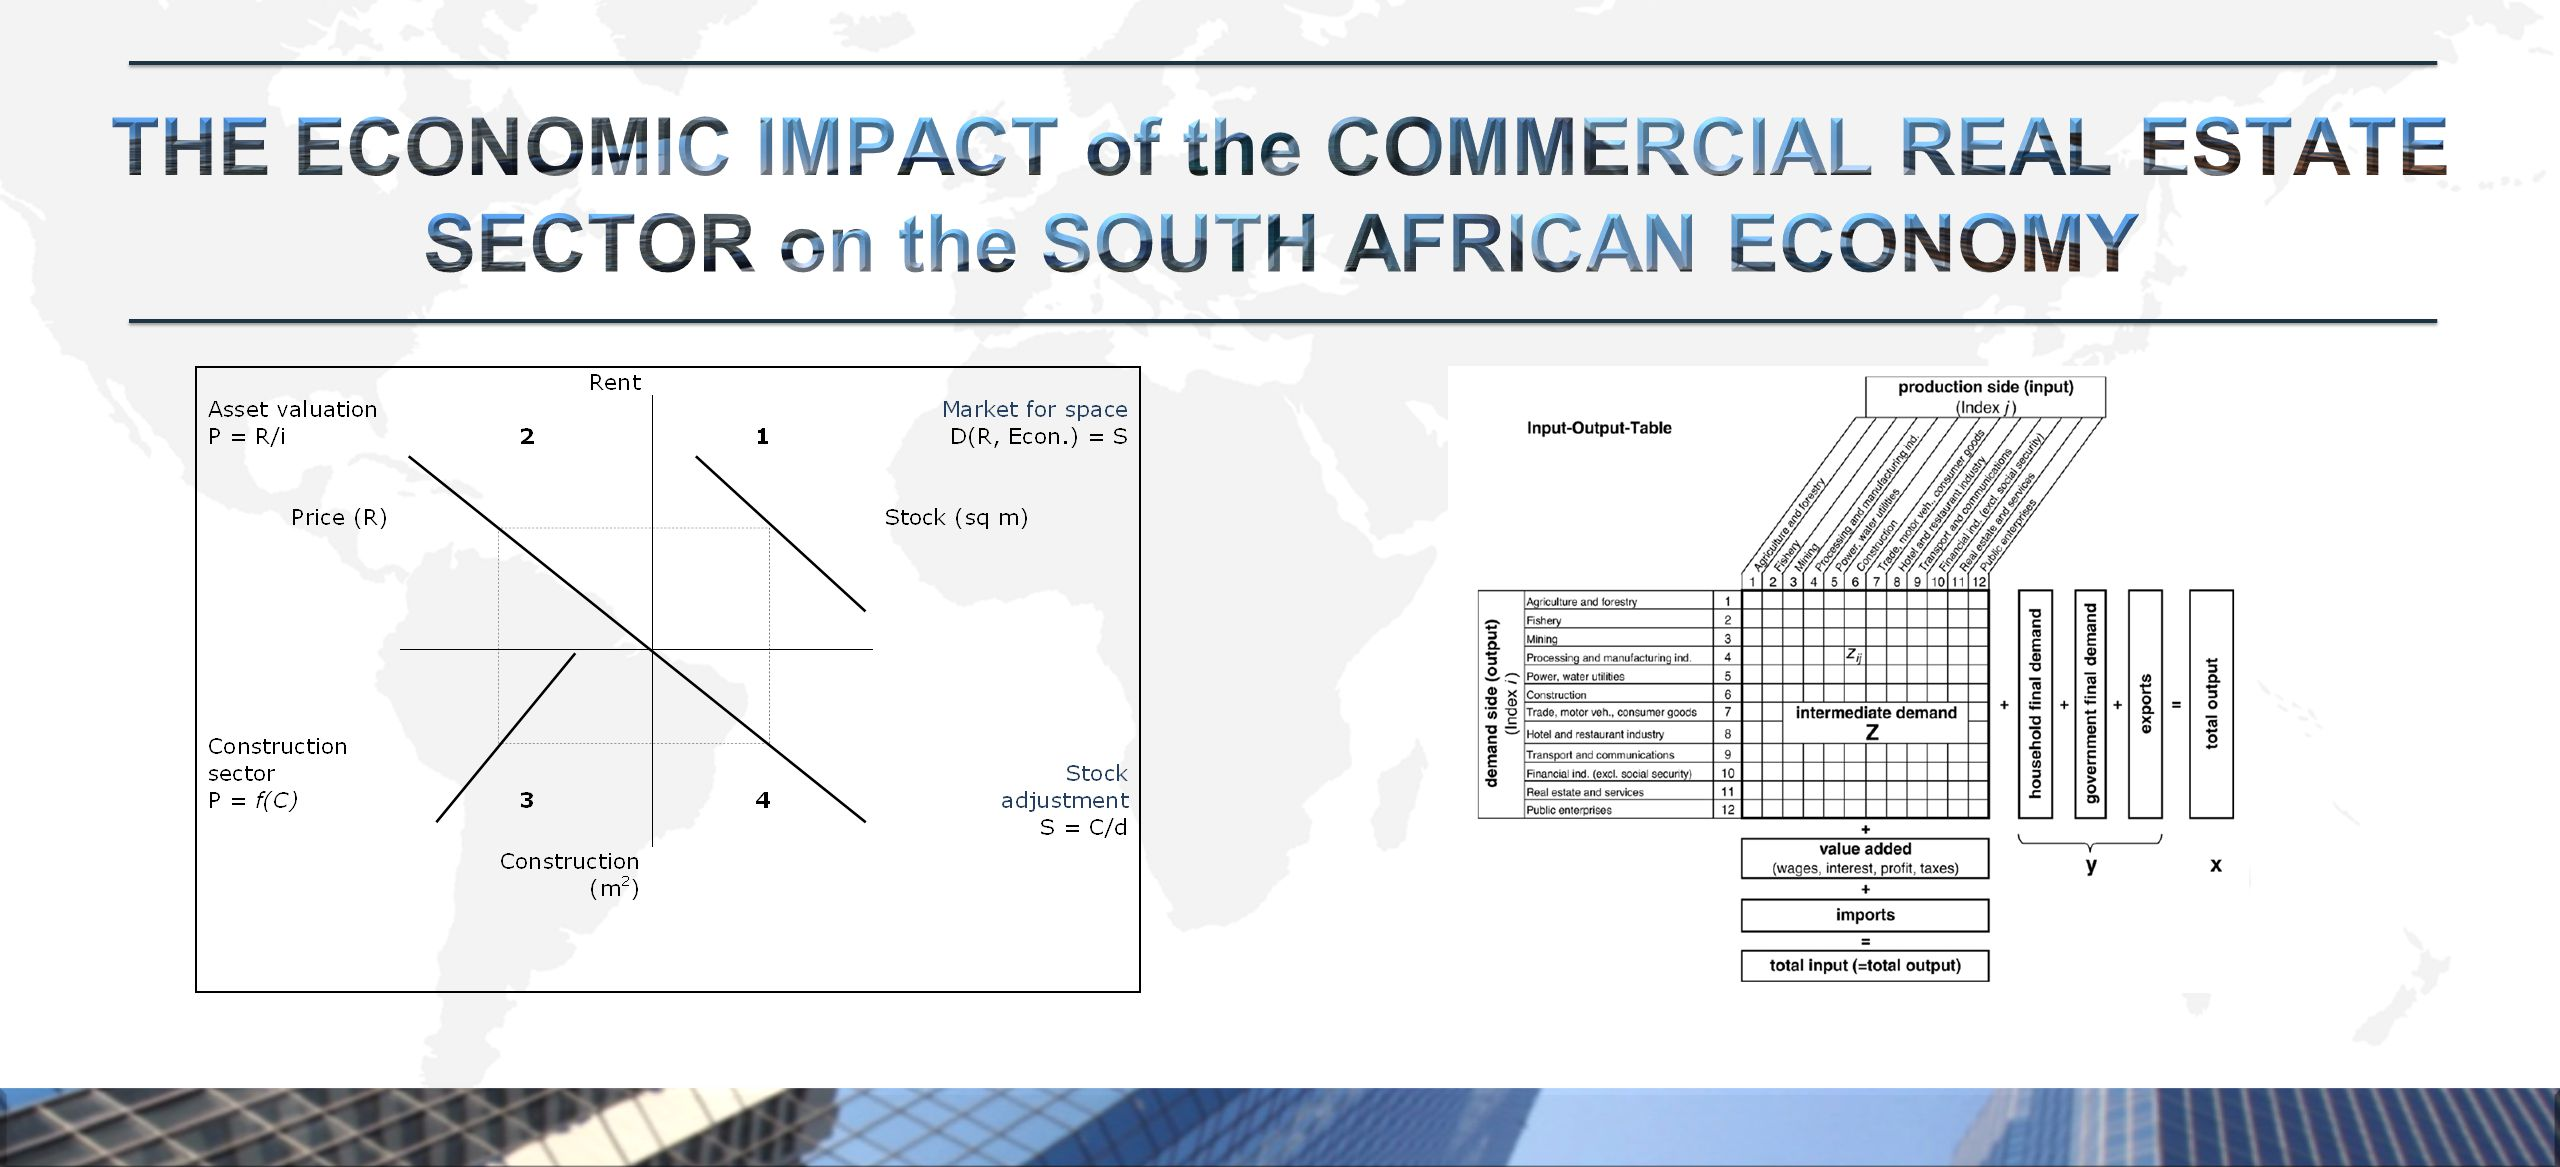  Economic Activity – sum of activity in each sector  Gross Domestic Product – value added by each sector  Job creation  Taxes on products and production  Direct, Indirect and Induced Impact  Economic impact – Not physical impact Emphasis of the study